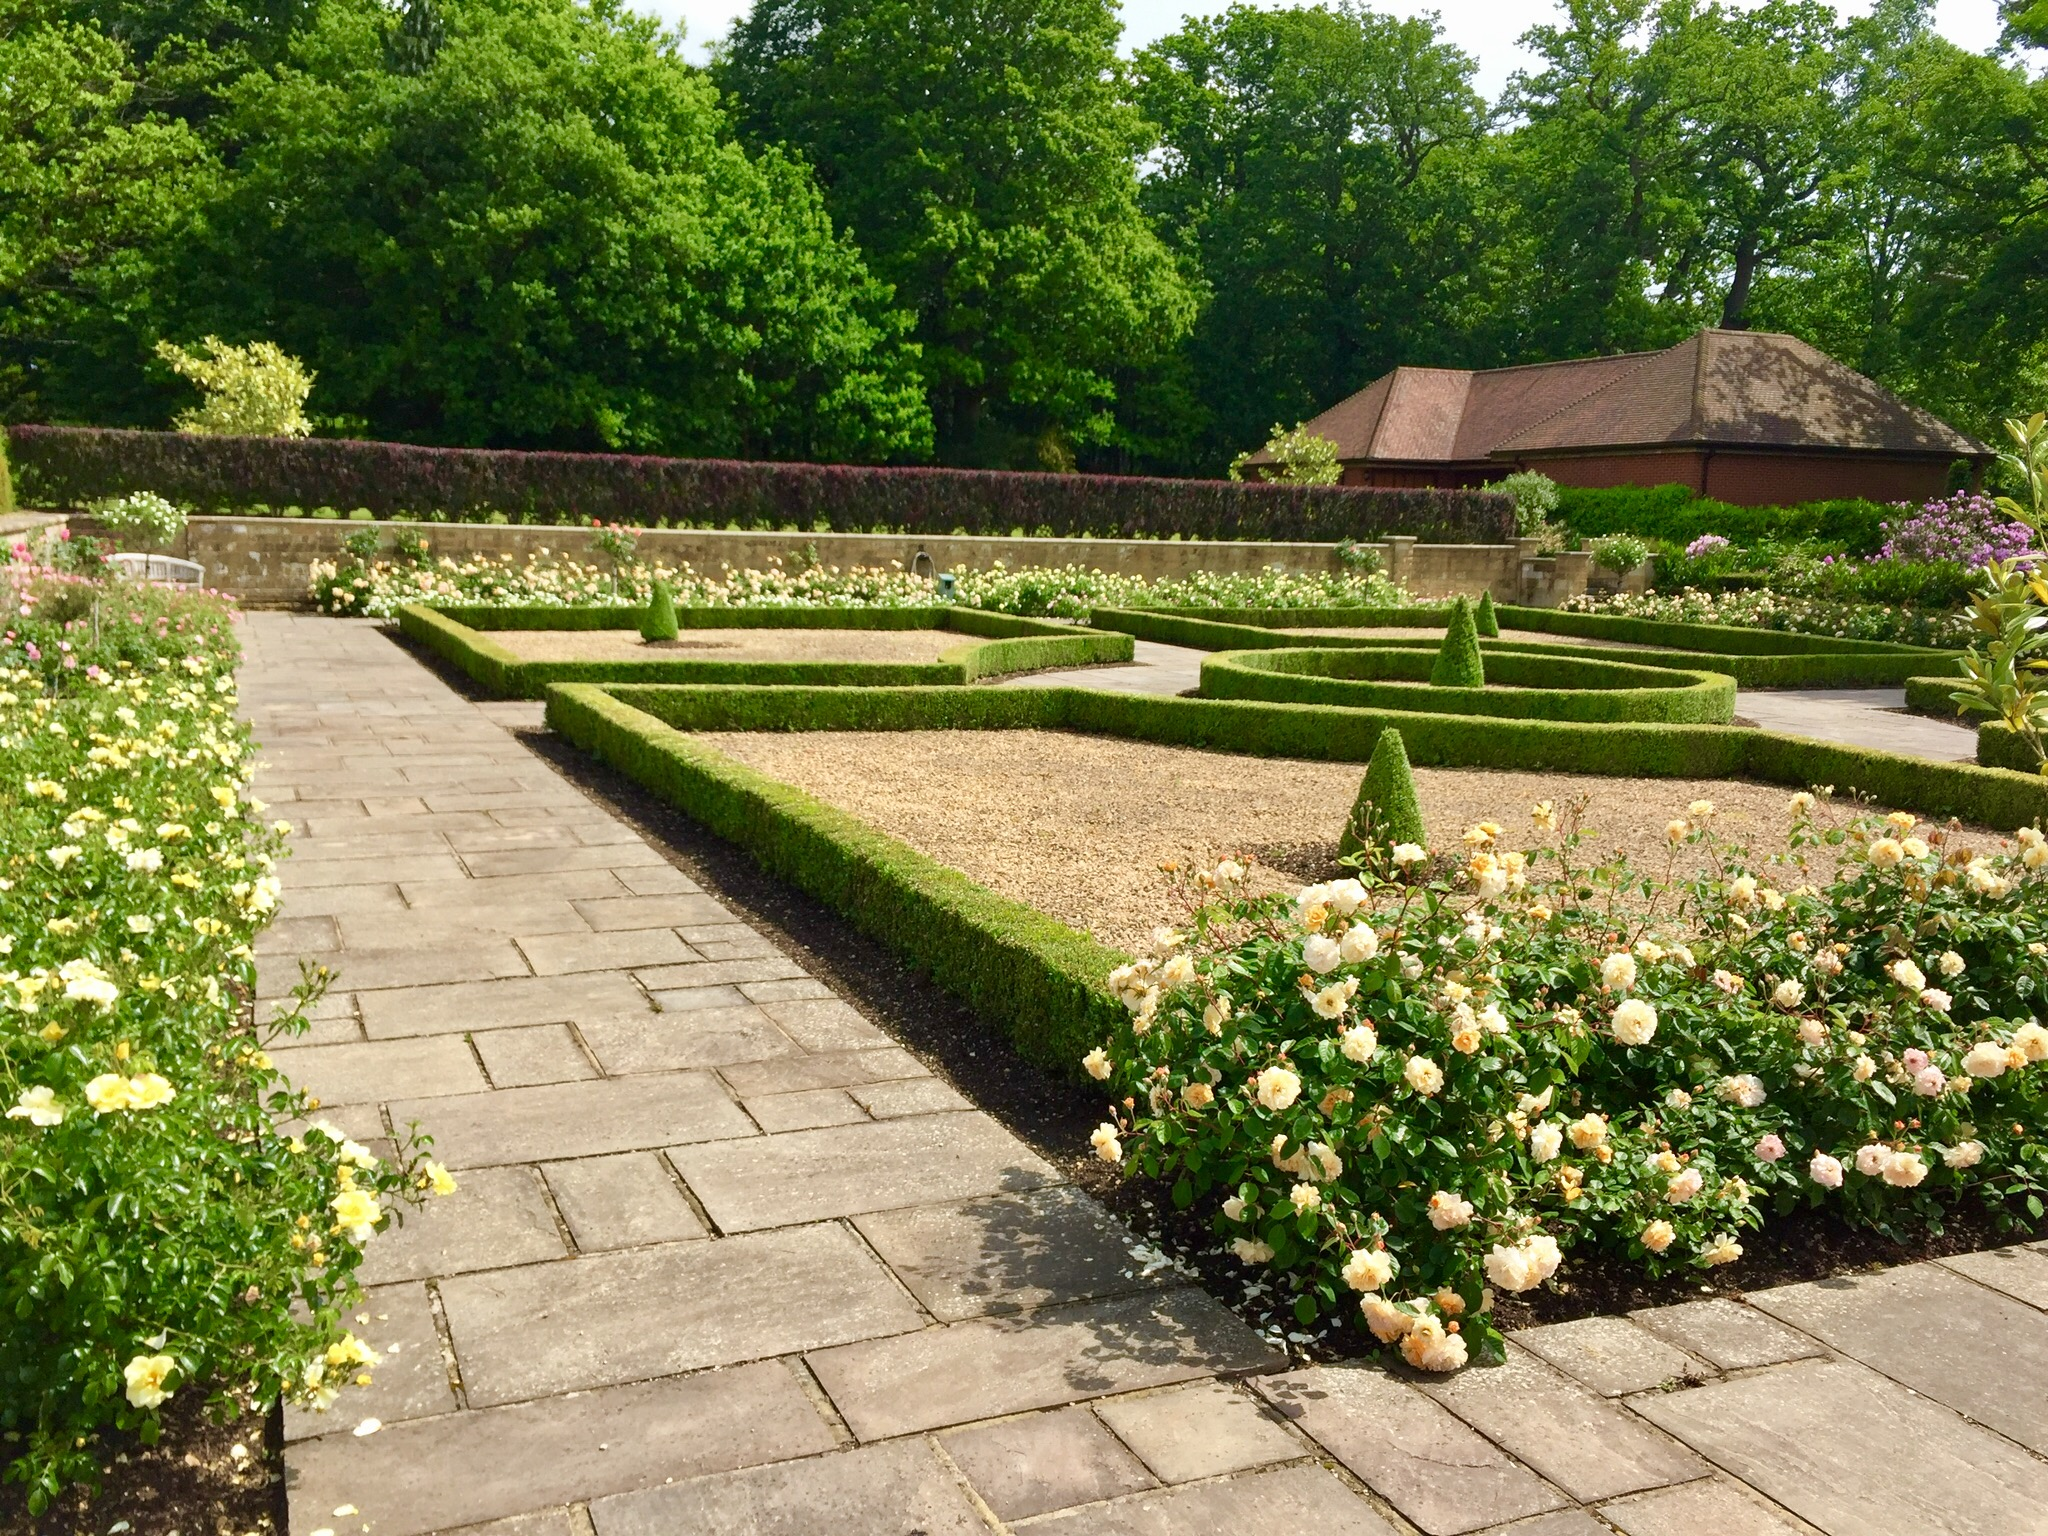 The rose garden at Swaylands